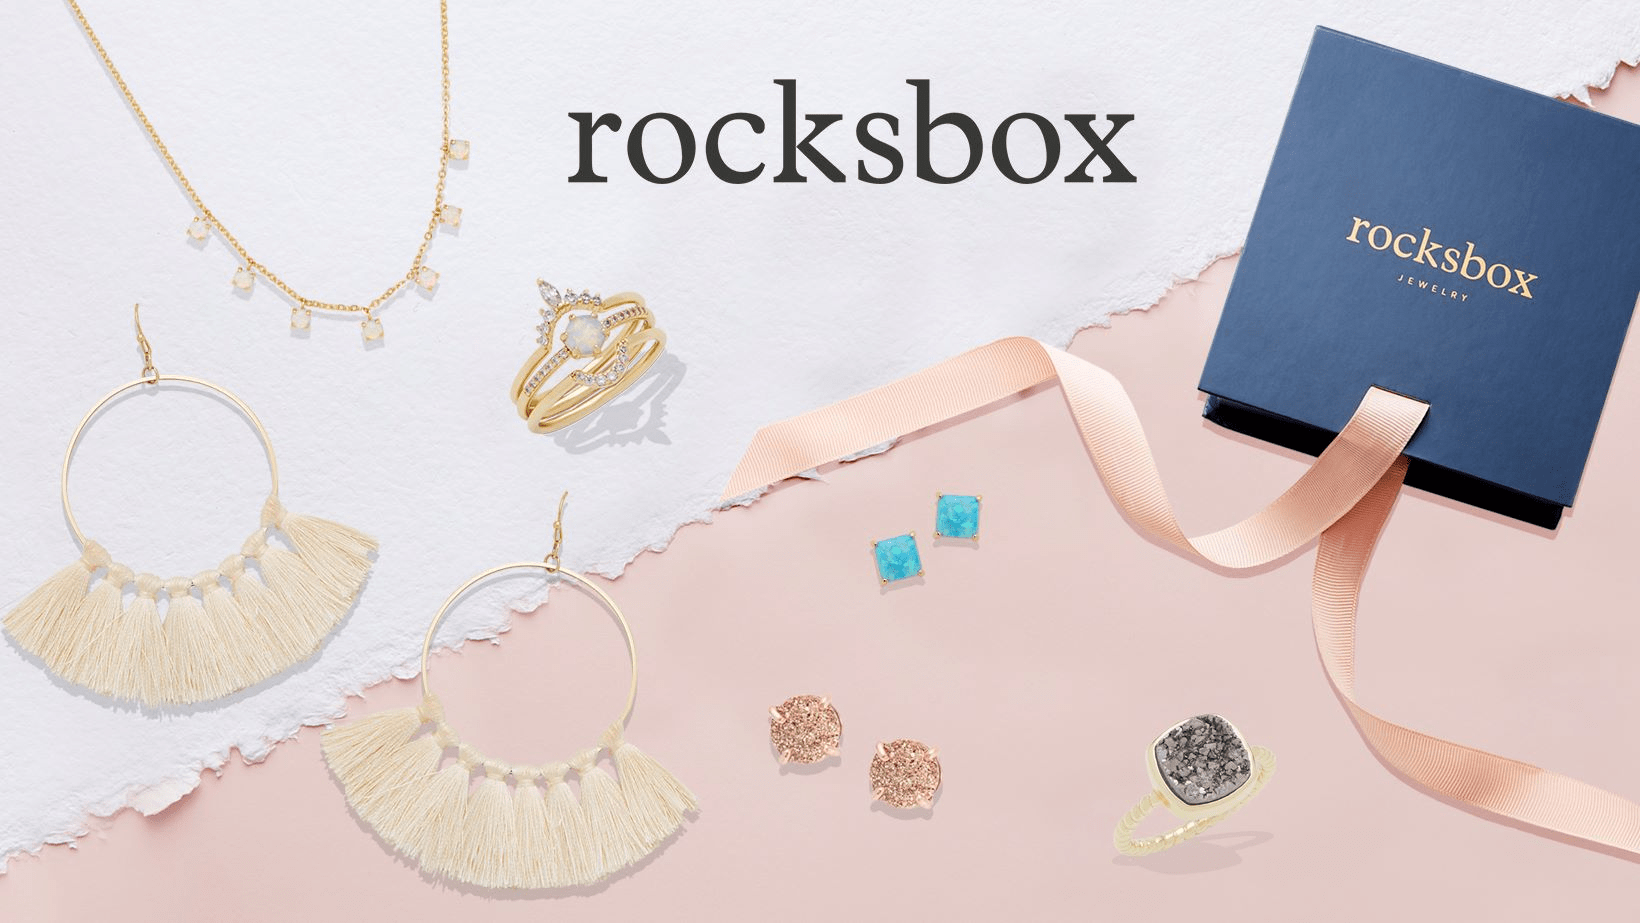 LAST DAY to Save $10 on RocksBox Holiday Gift Subscriptions + Try it FREE!